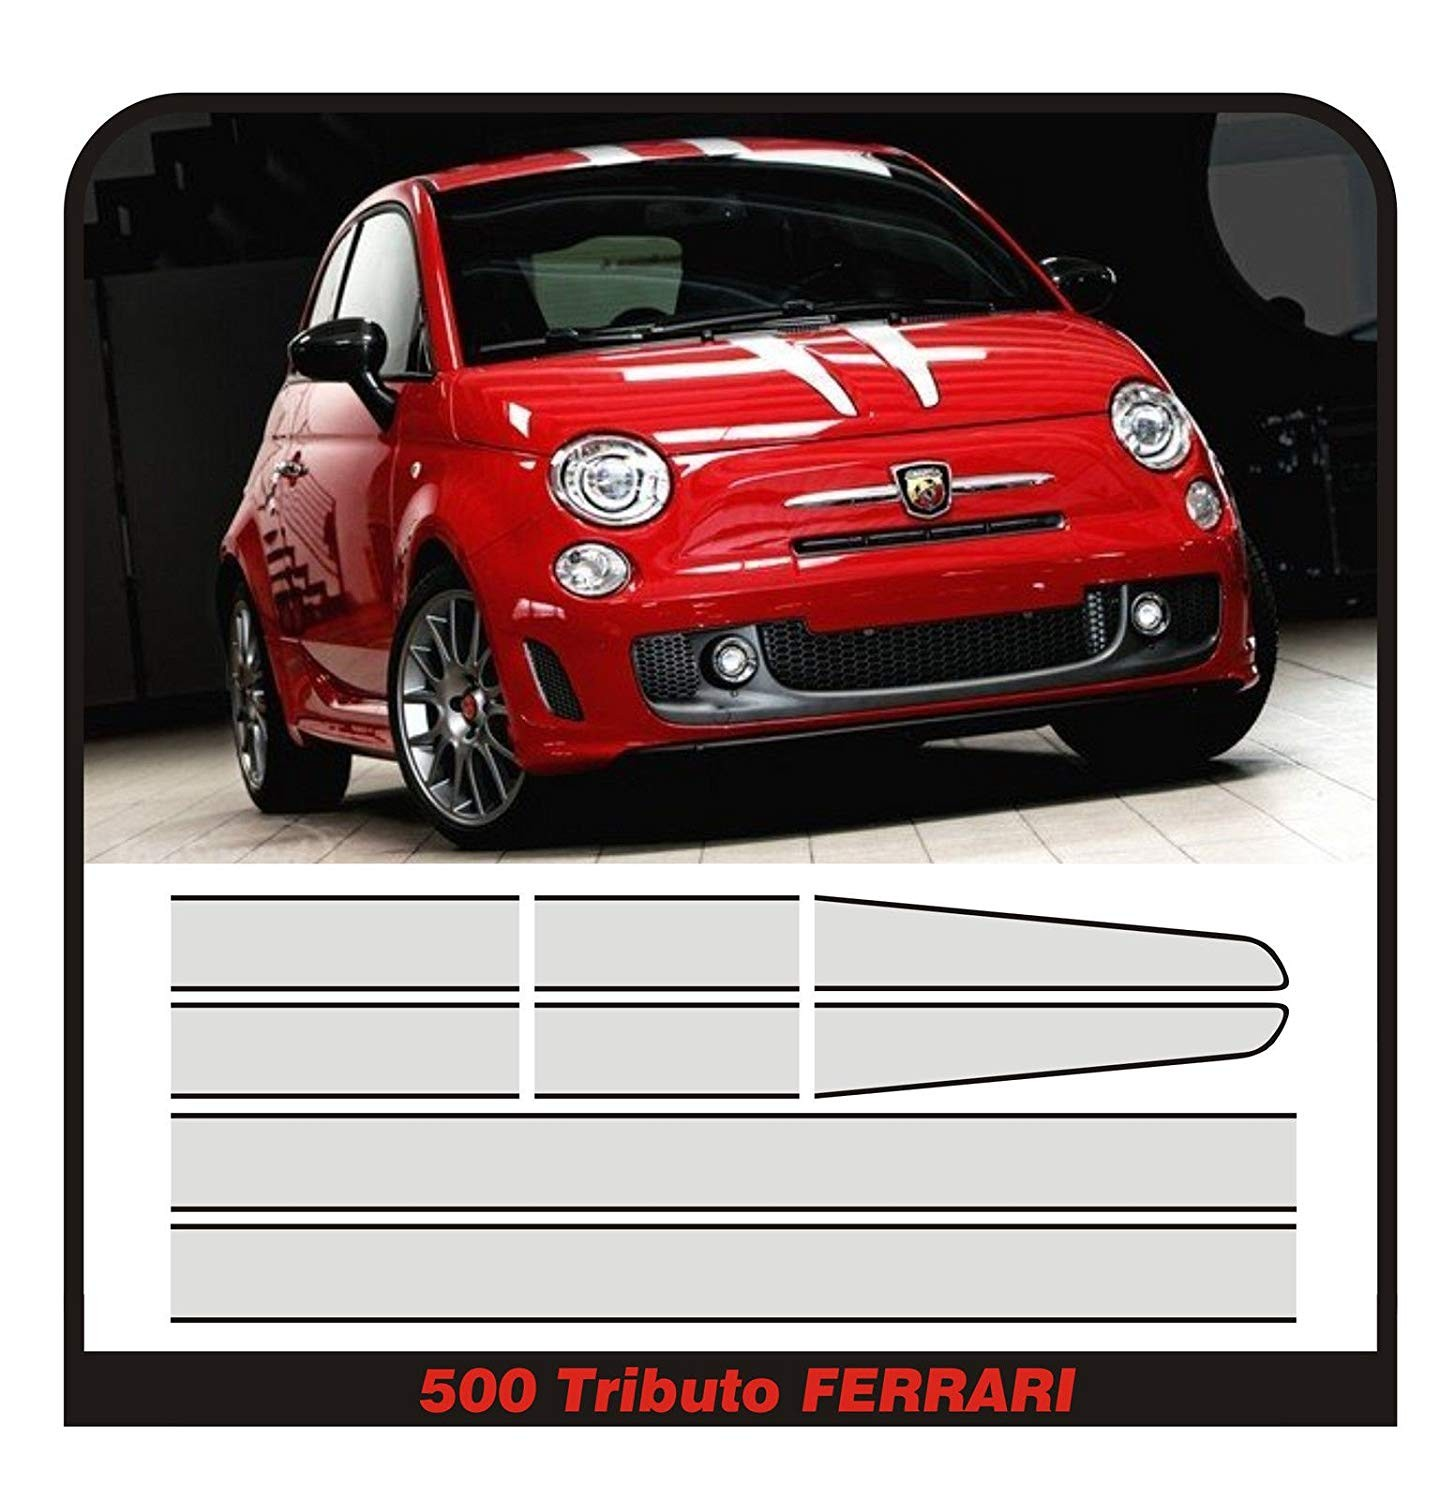 Adhesives Adhesive Strips For Fiat 500 Abarth Tributo Ferrari Stripes 695 Stickers Hood Roof And Trunk